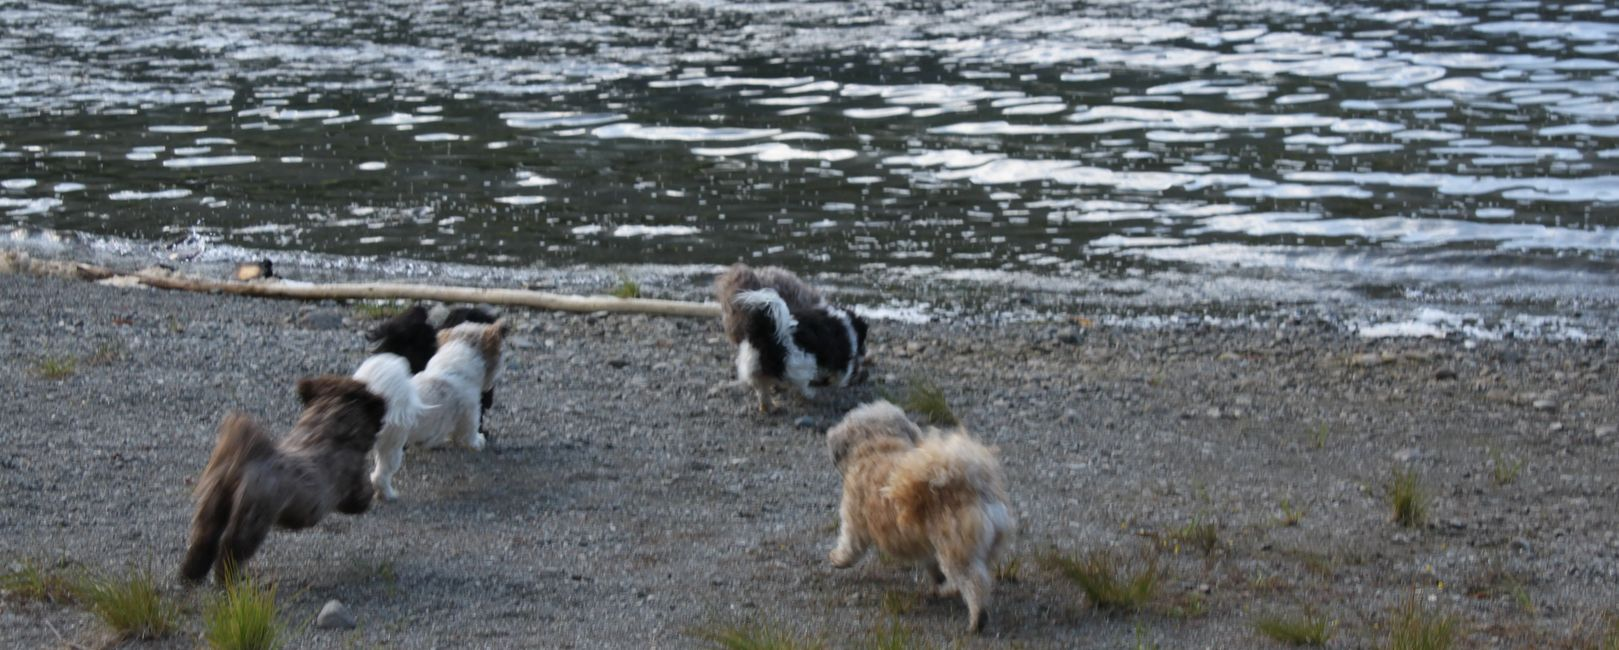 Teddy bear Zuchon (Shichon or Shih Tzu bichon) Adult dogs running jumping at the lake - Happy Healthy comical affectionate highly trainable great service or therapy dogs  excellent companion or family dog - www.tinyteddys.com - Tiny Teddies